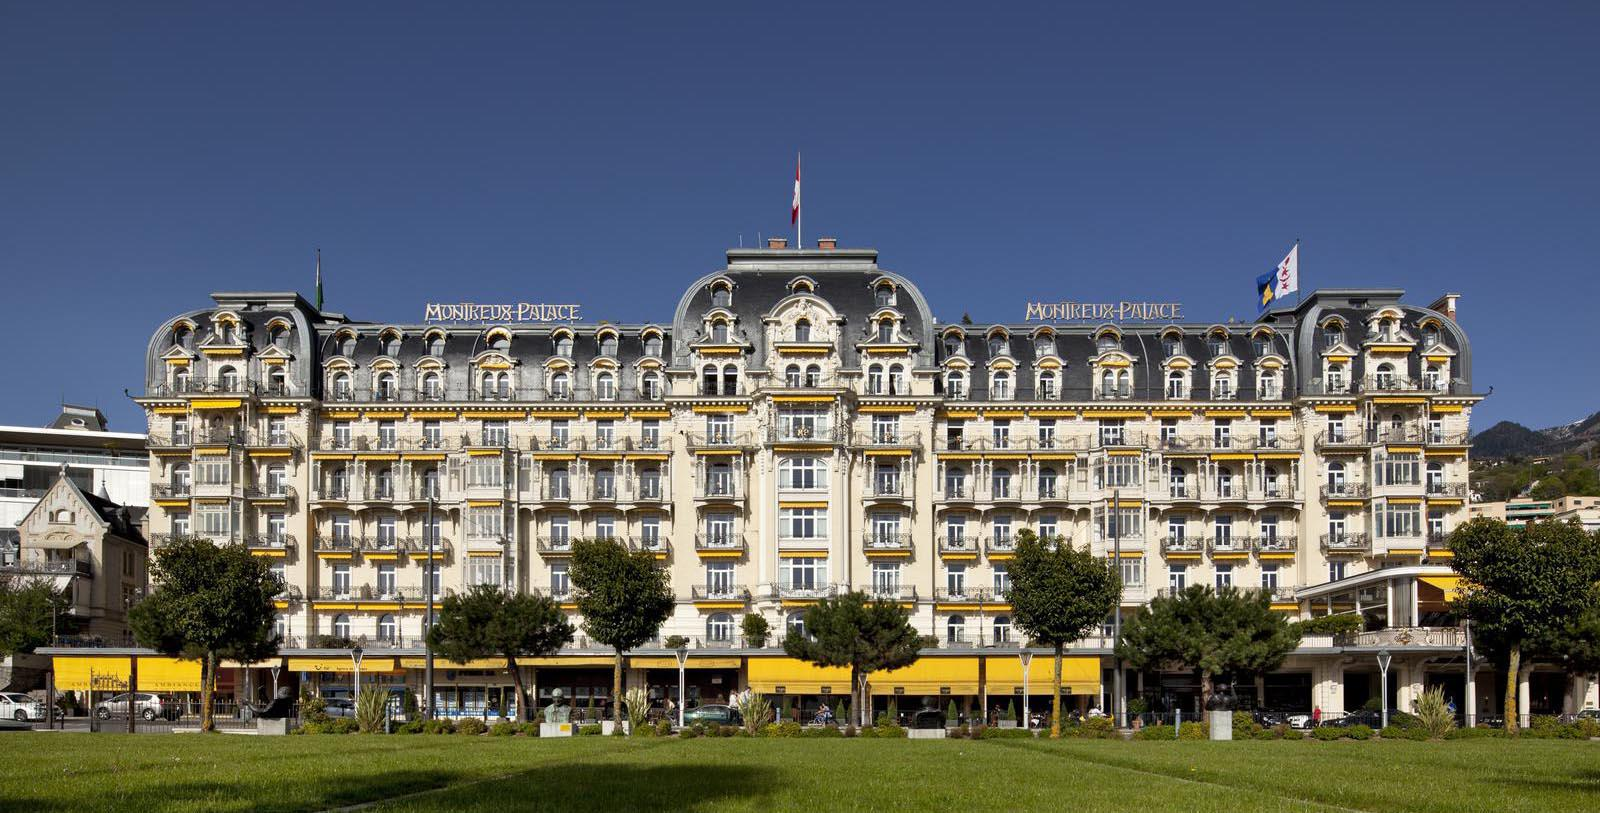 Daytime exterior of the Fairmont Le Montreux Palace in Switzerland.